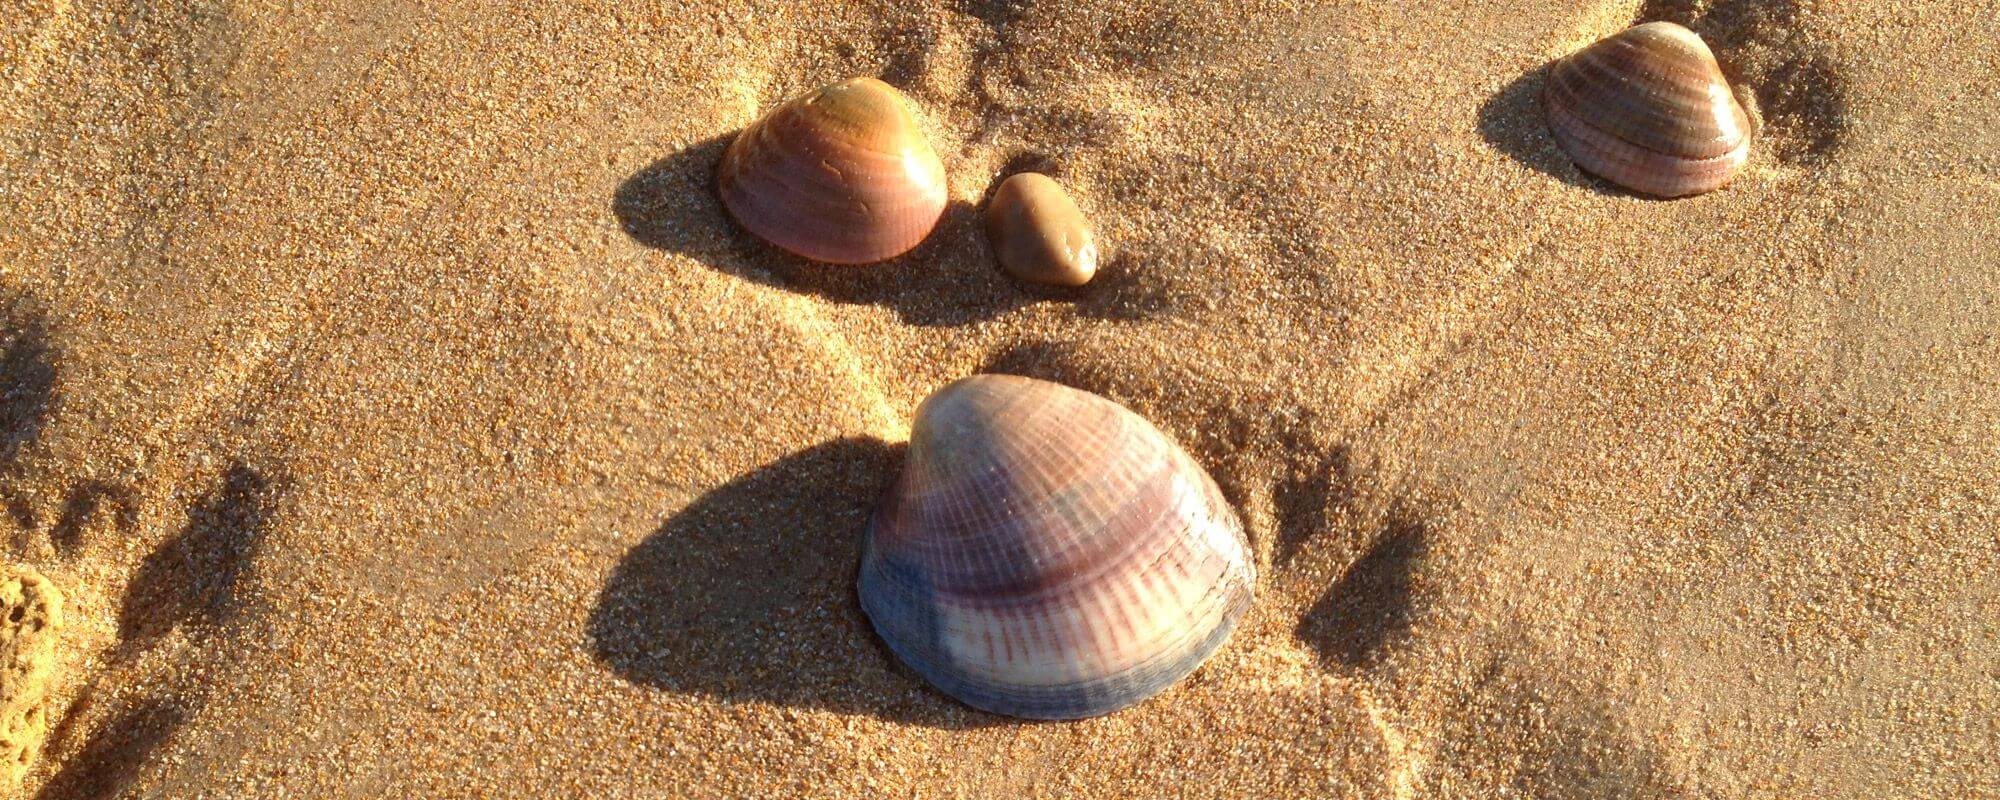 Shell on the sand of the beach- Accommodation Flamenco Villas in Conil